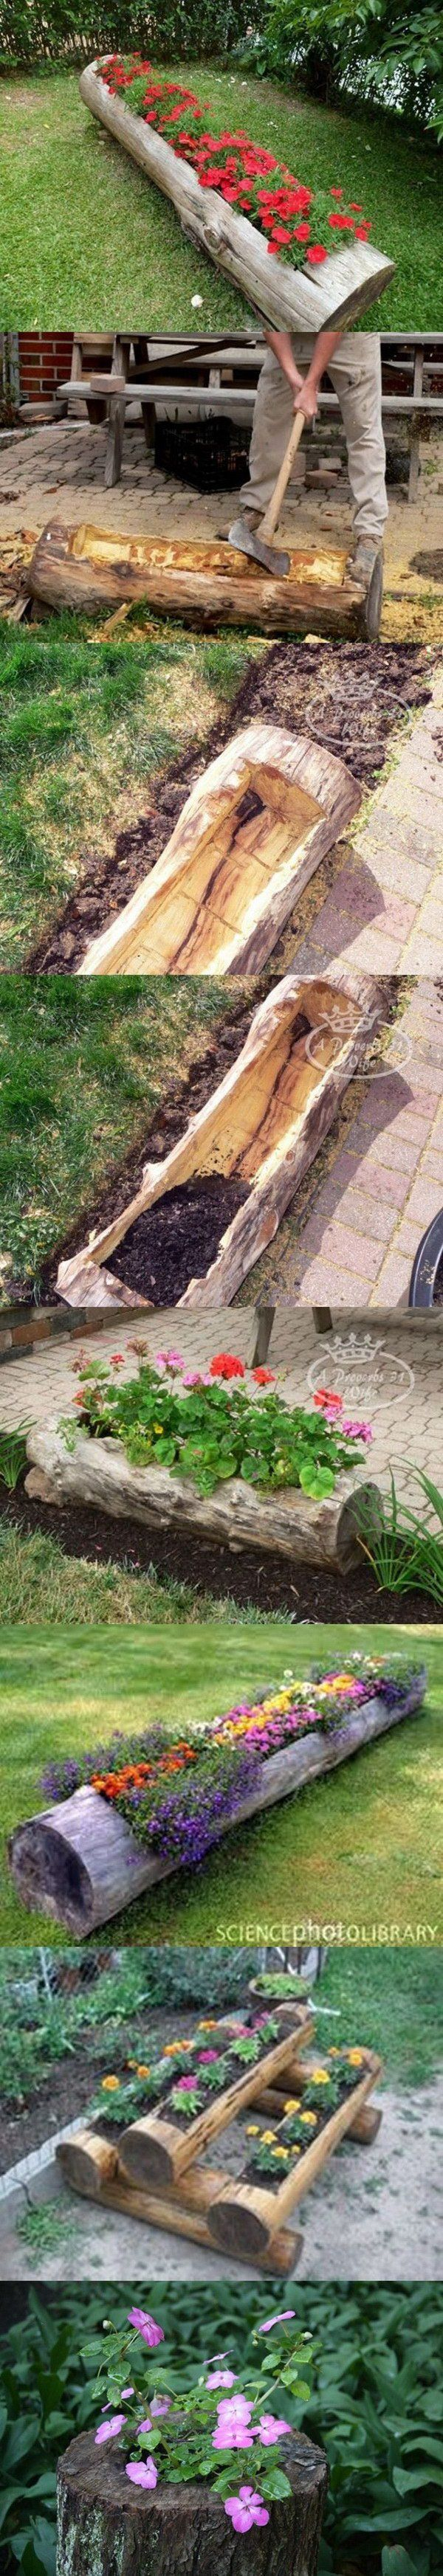 220 Best Images About Landscaping Ideas On Pinterest